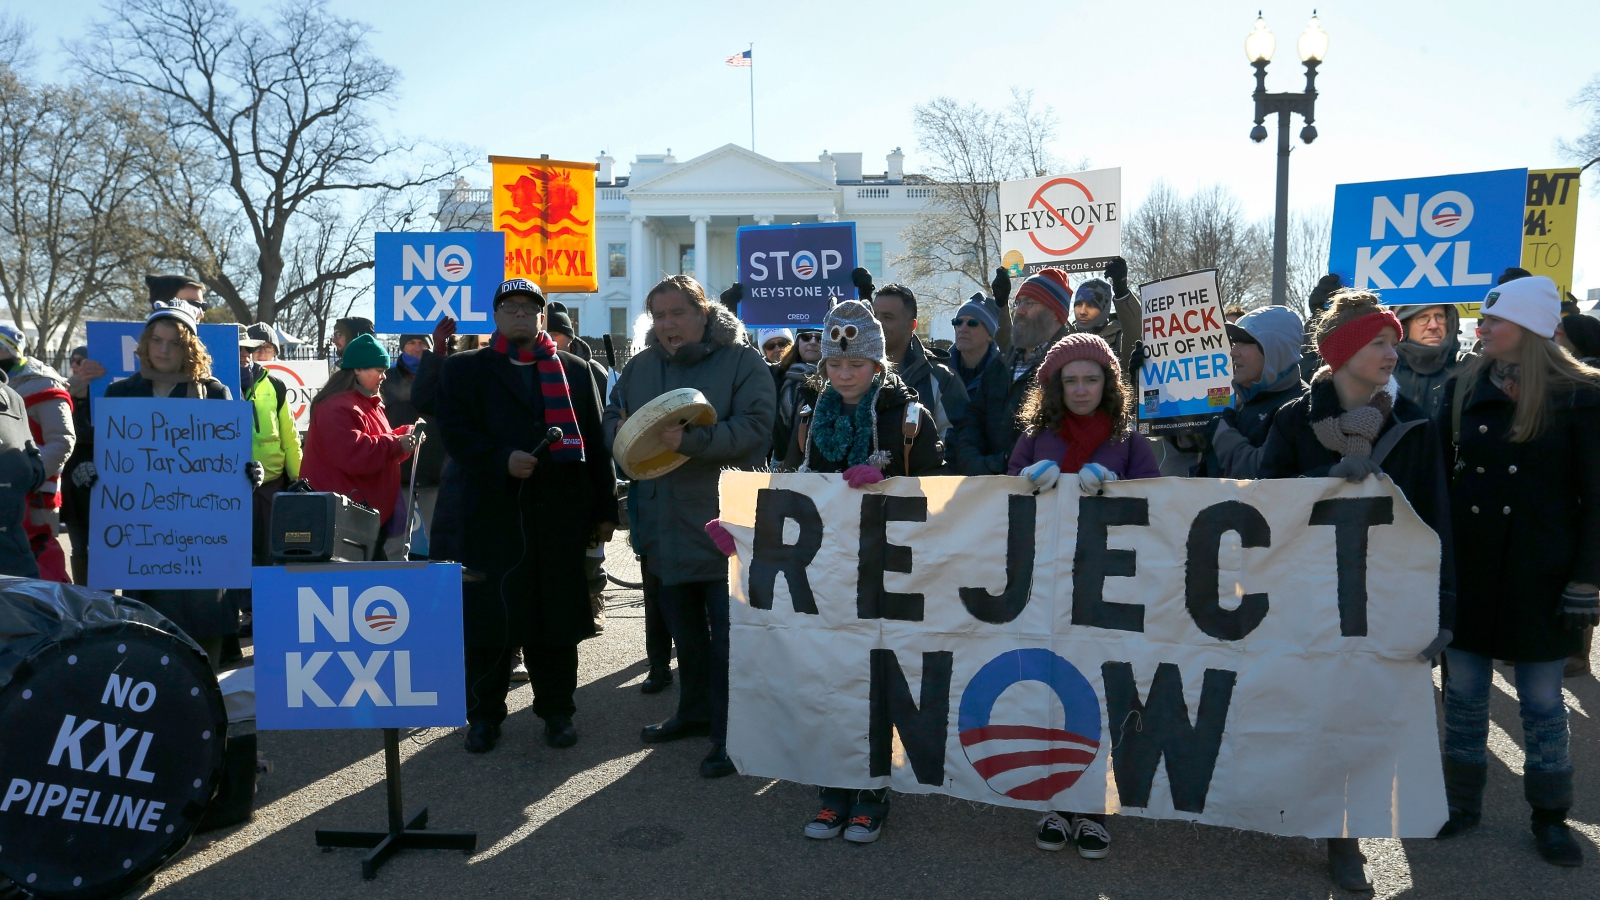 Keystone protest in front of White House